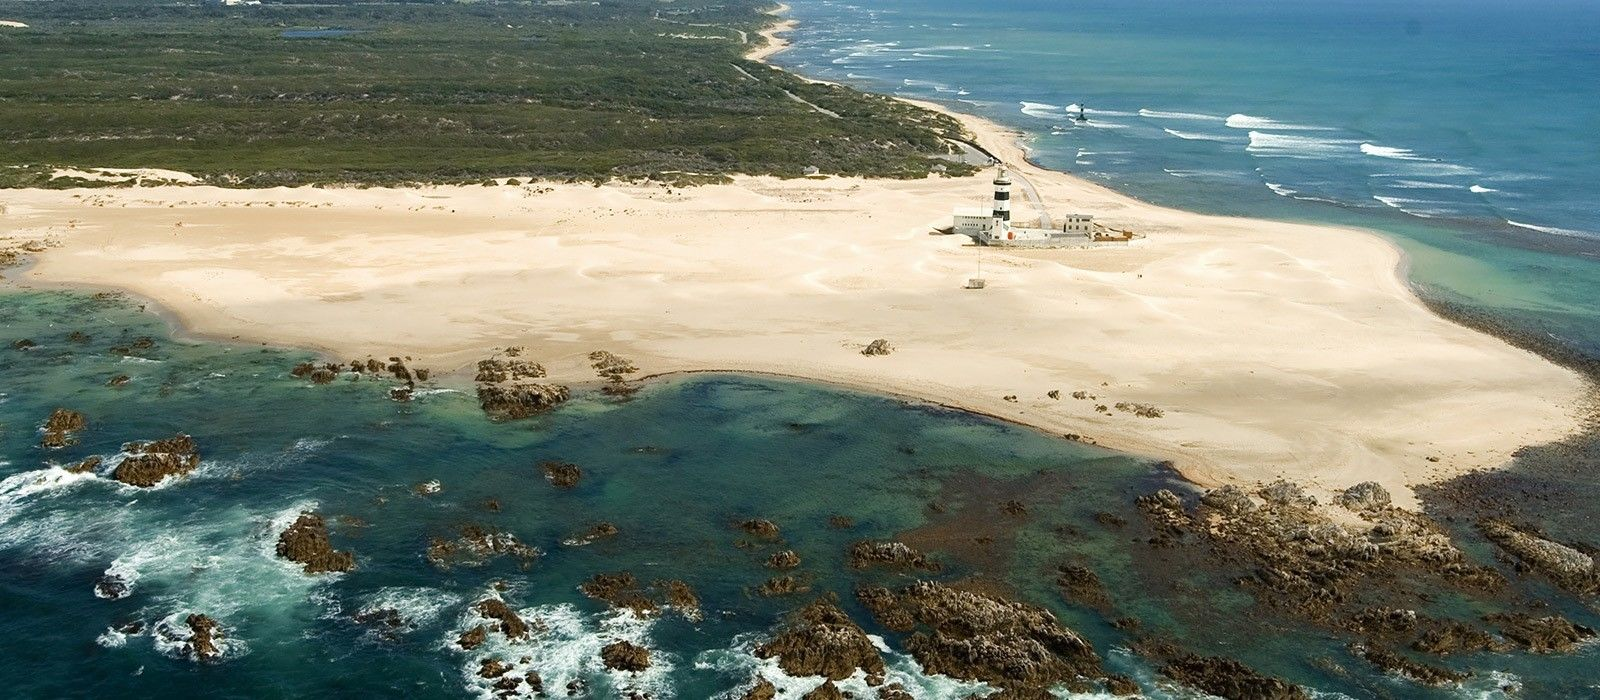 Destination Port Elizabeth South Africa